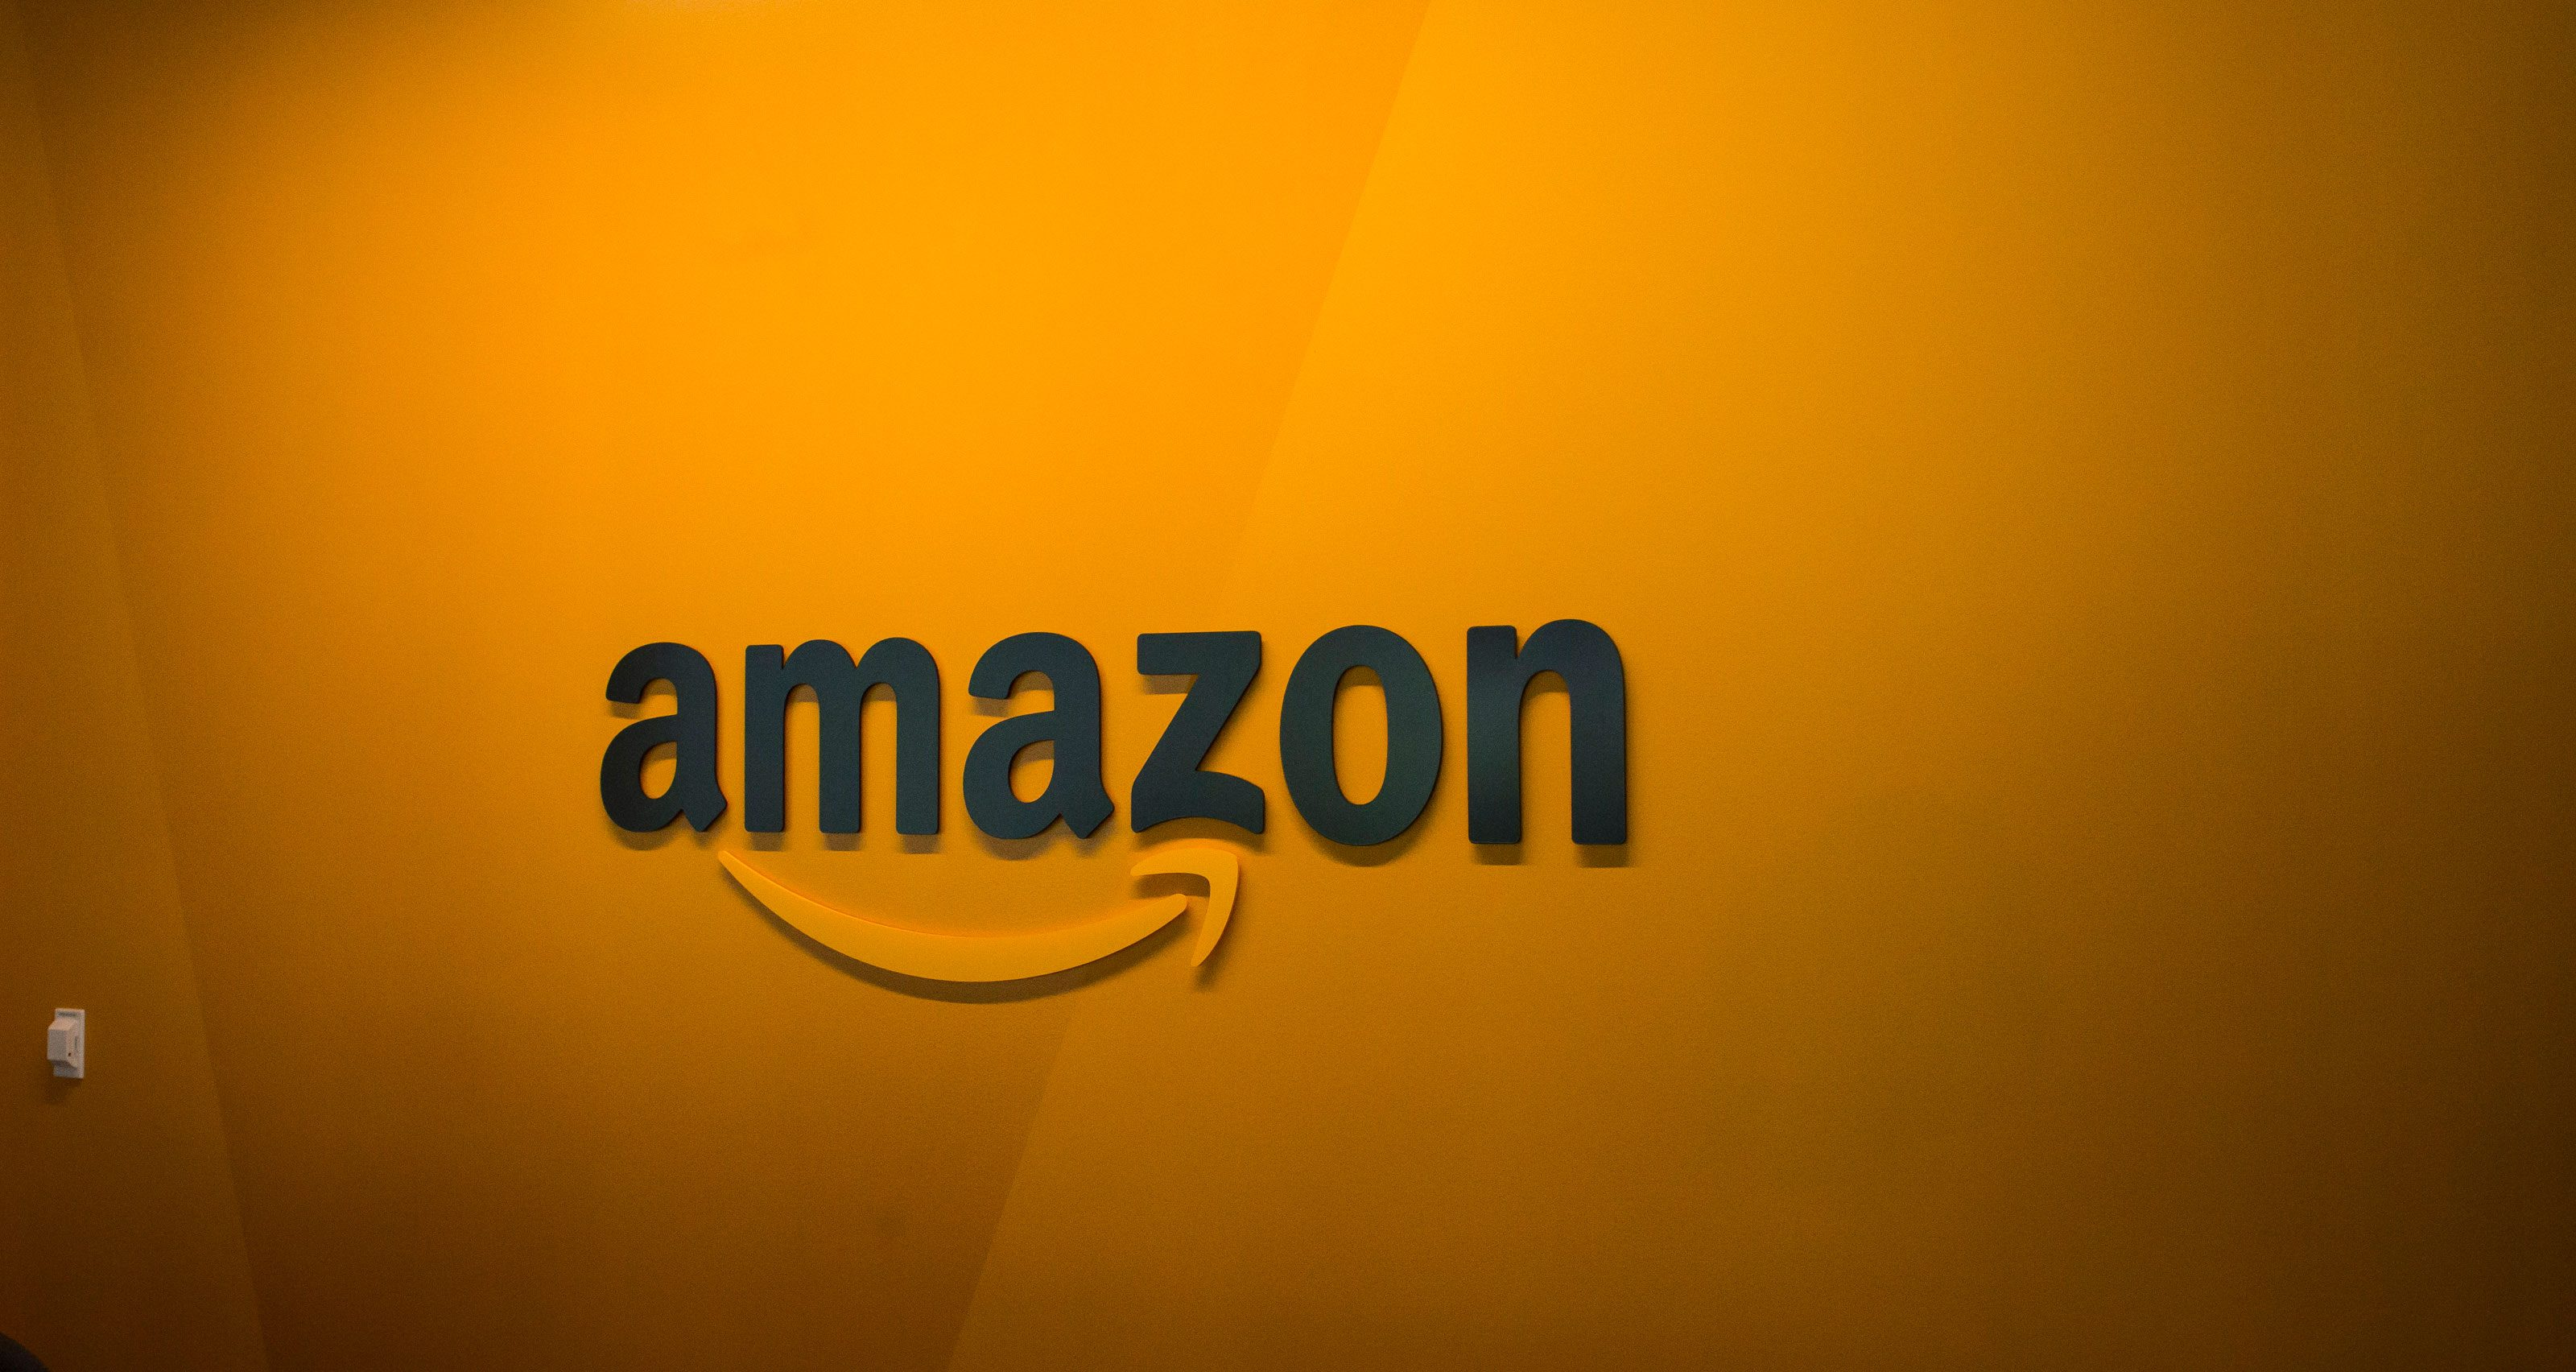 Amazon offers unlimited sick days to prevent coronavirus spread